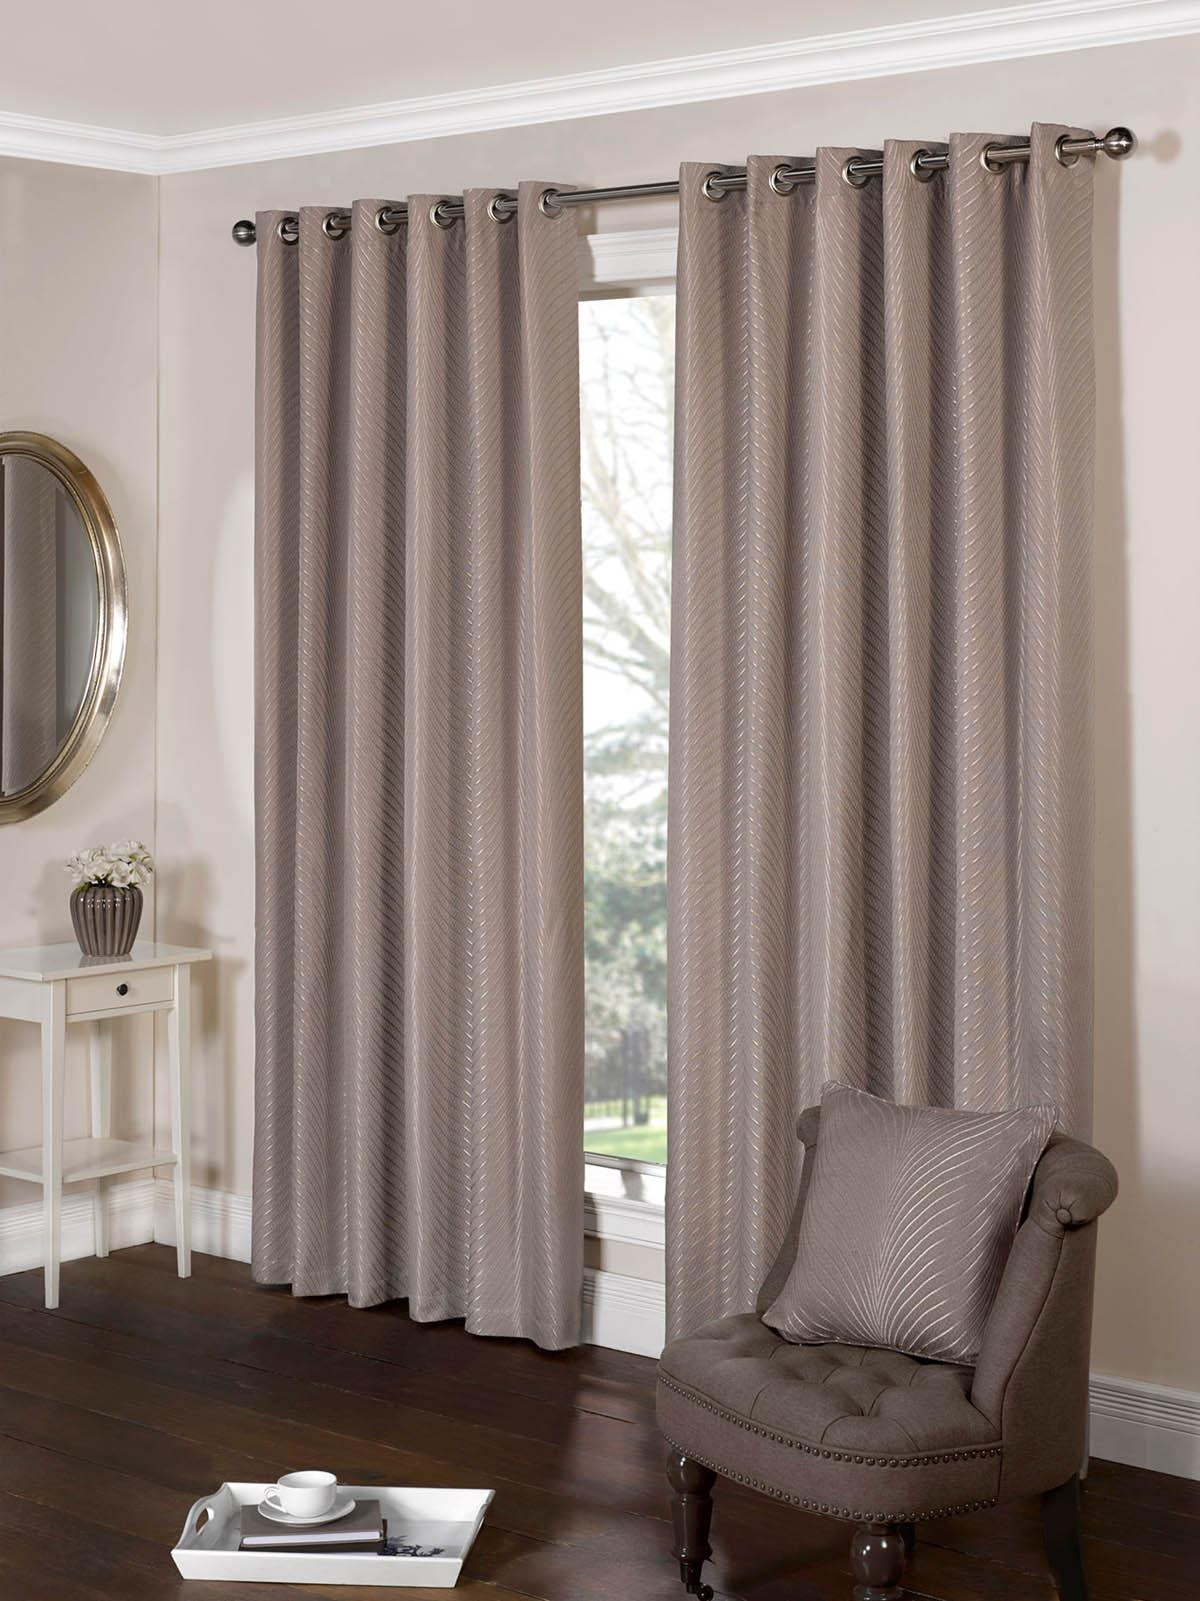 Tibet Ready Made Eyelet Curtains Taupe Luxury Ringtop Curtains